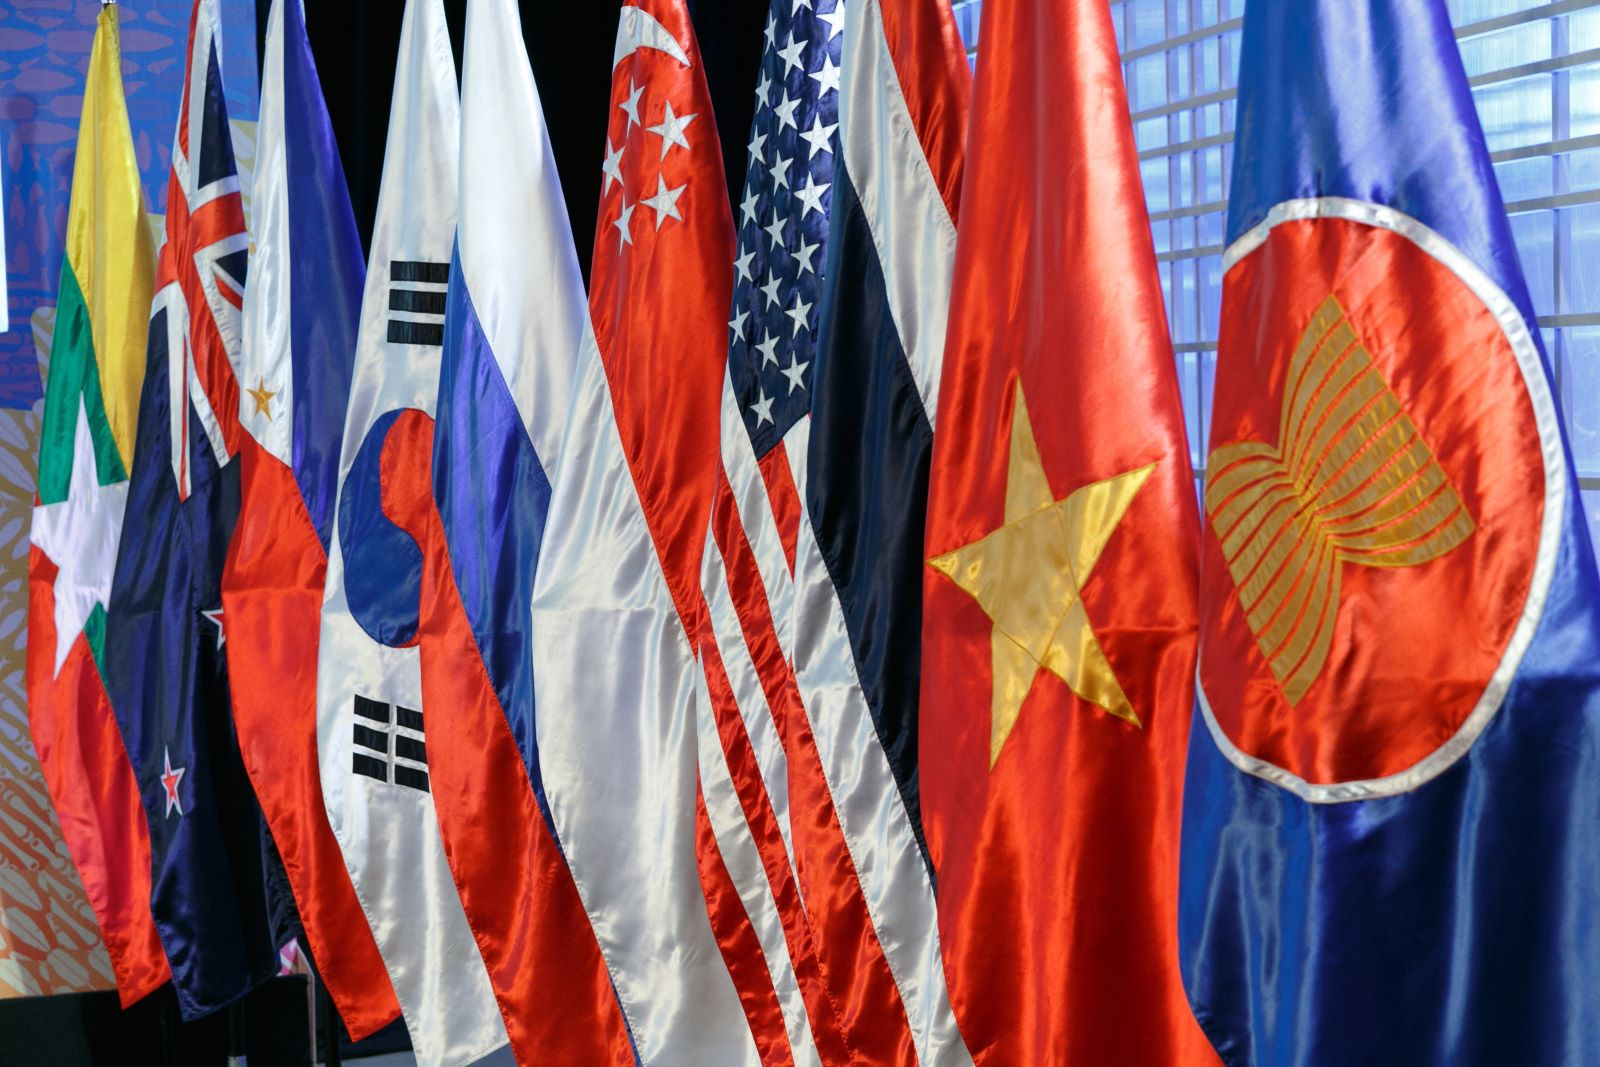 ASEAN flags at a meeting of ASEAN officials in Manila, Philippines (Photo: Vadim Savitsky\via Getty)